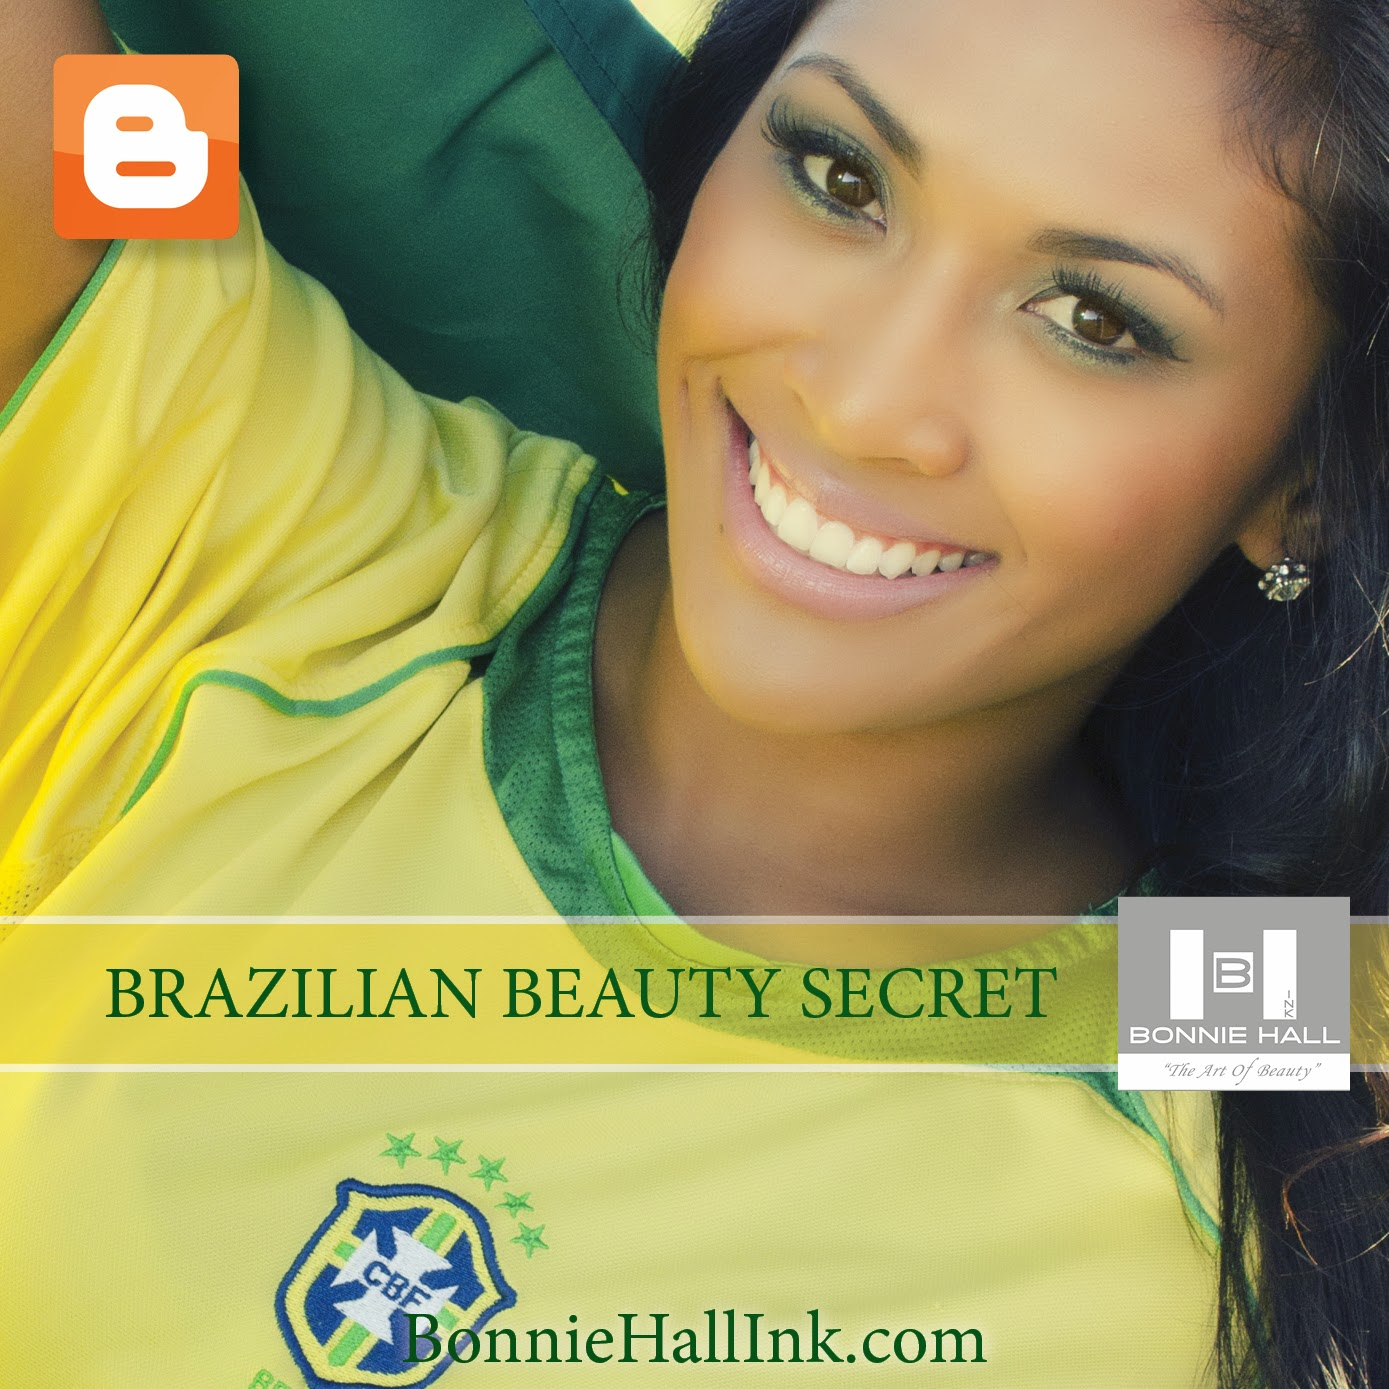 BRAZILIAN BEAUTY SECRET